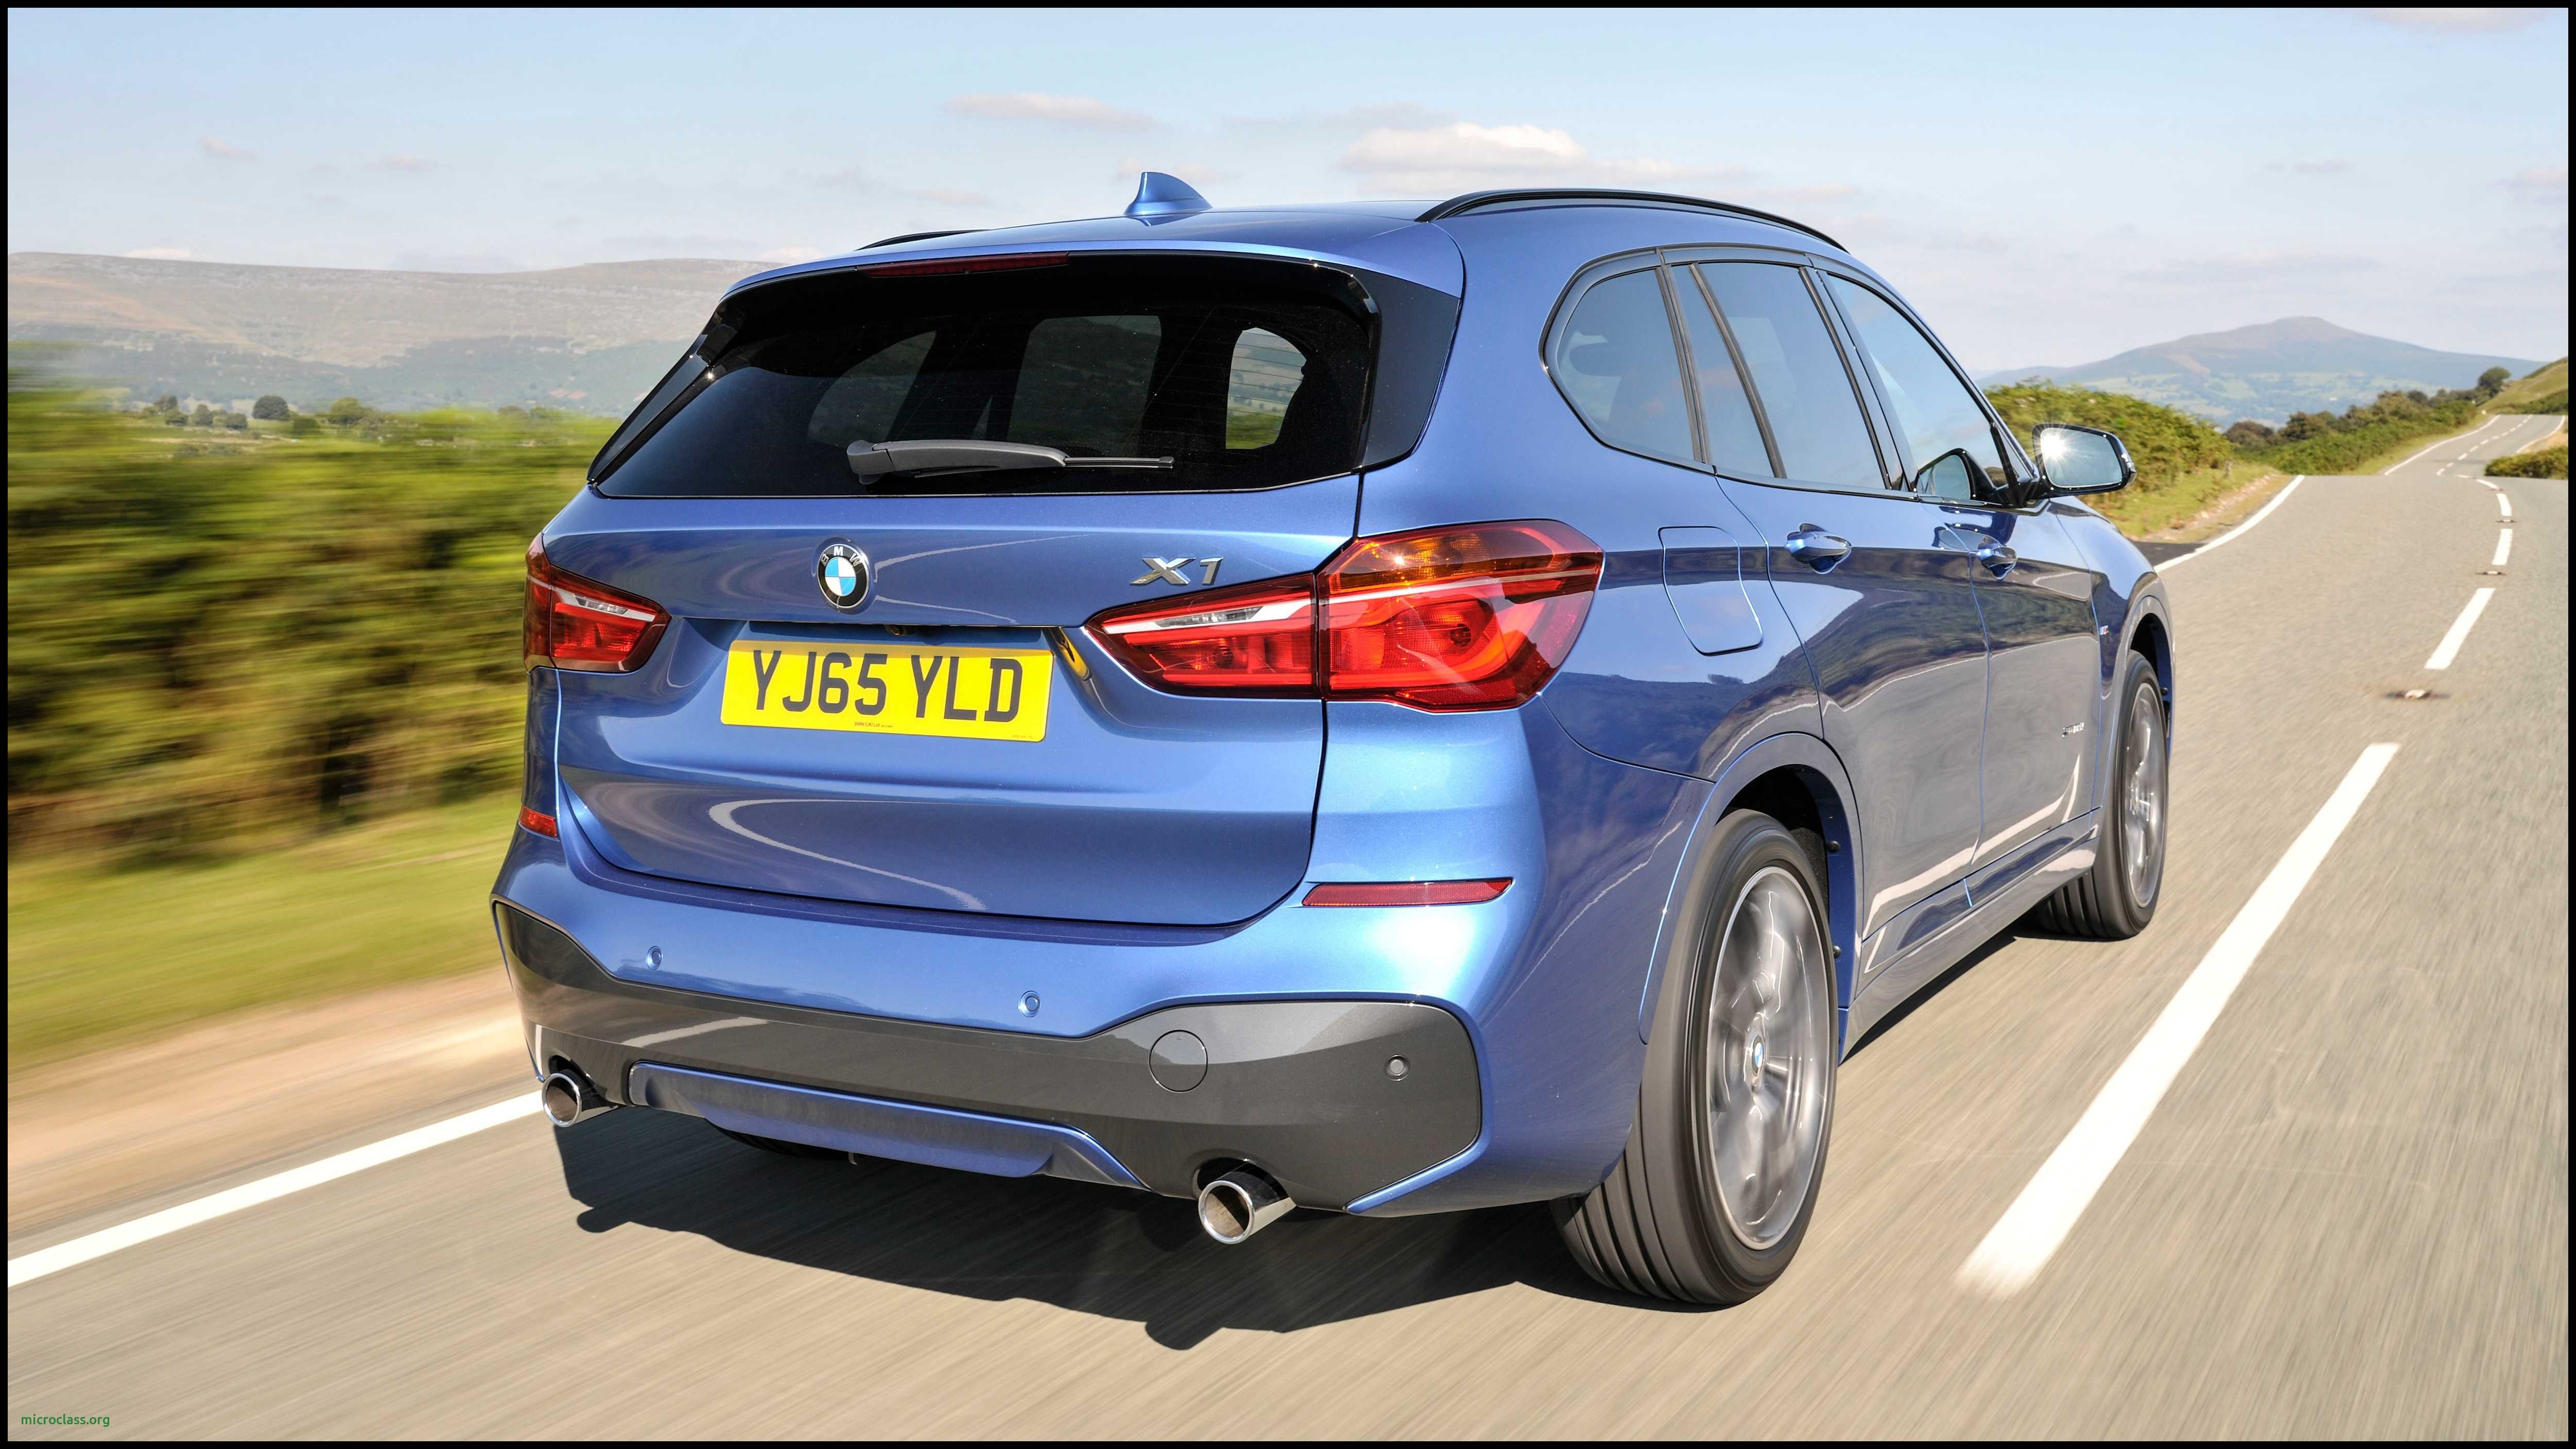 Bmw Suv 2018 Review Specs and Release Date 2019 X1 Bmw 2019 Bmw X1 Bmw